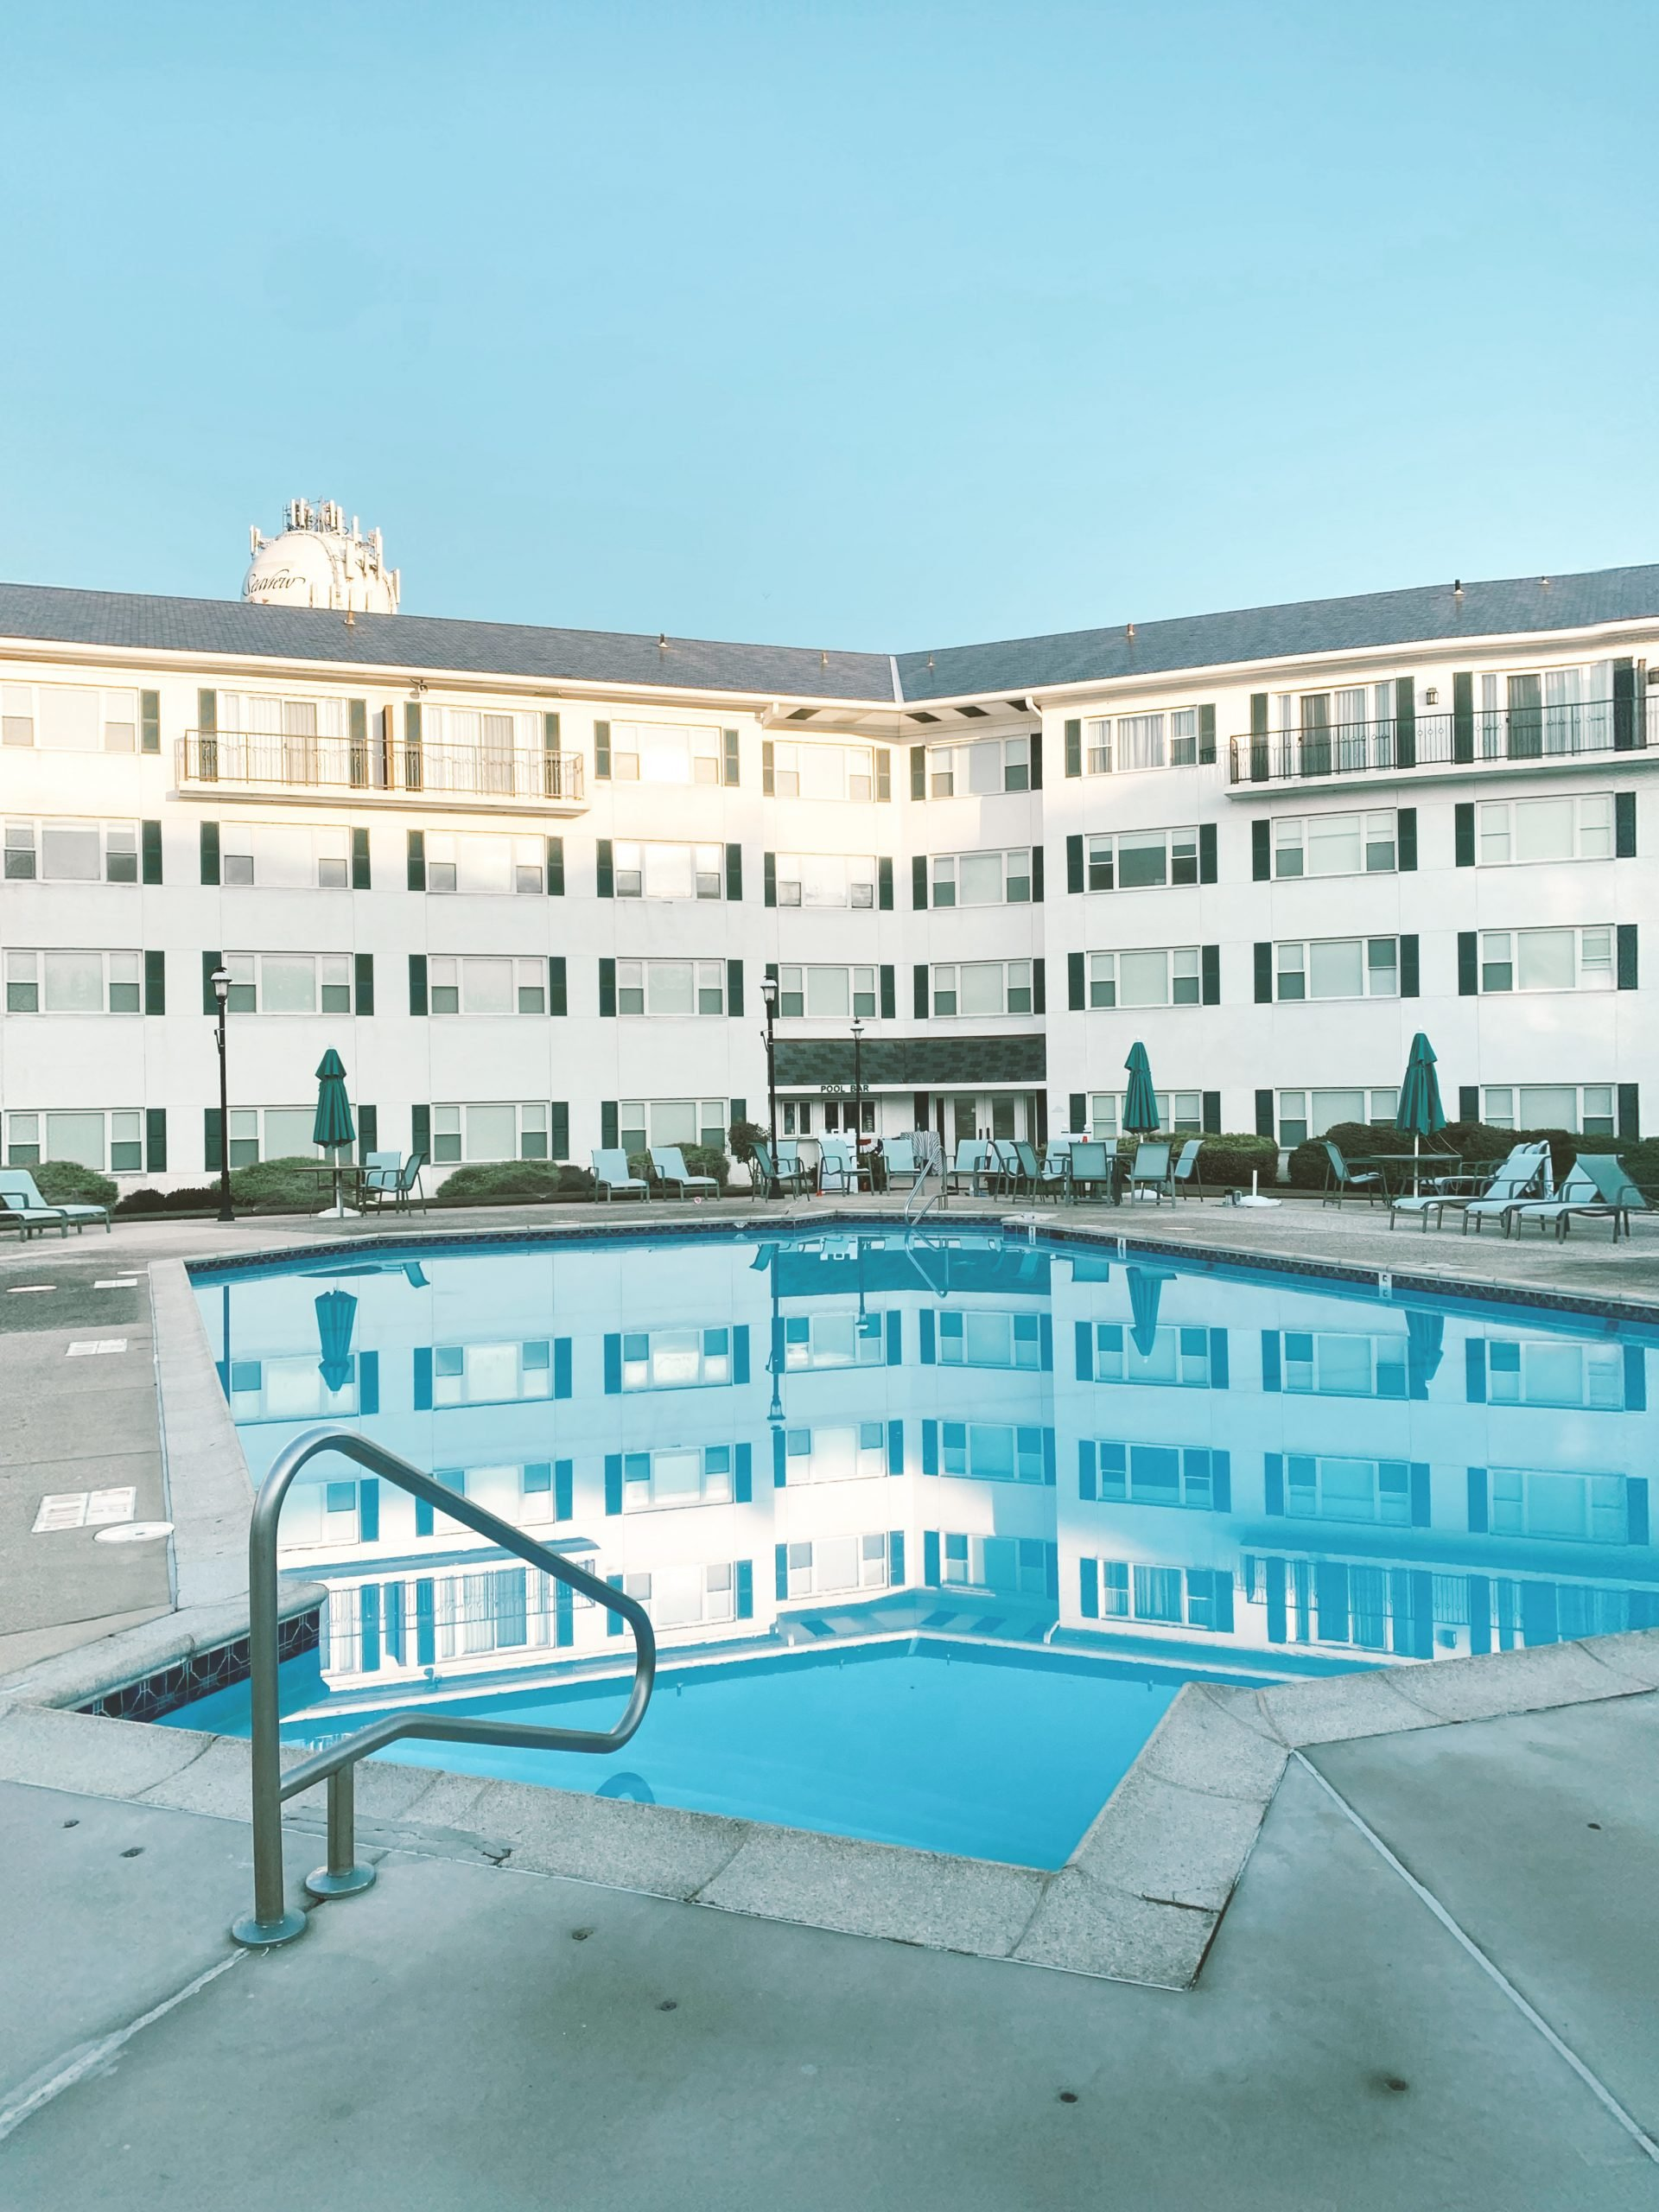 Chocolate and Lace shares her family trip to Seaview Hotel in Galloway New Jersey.